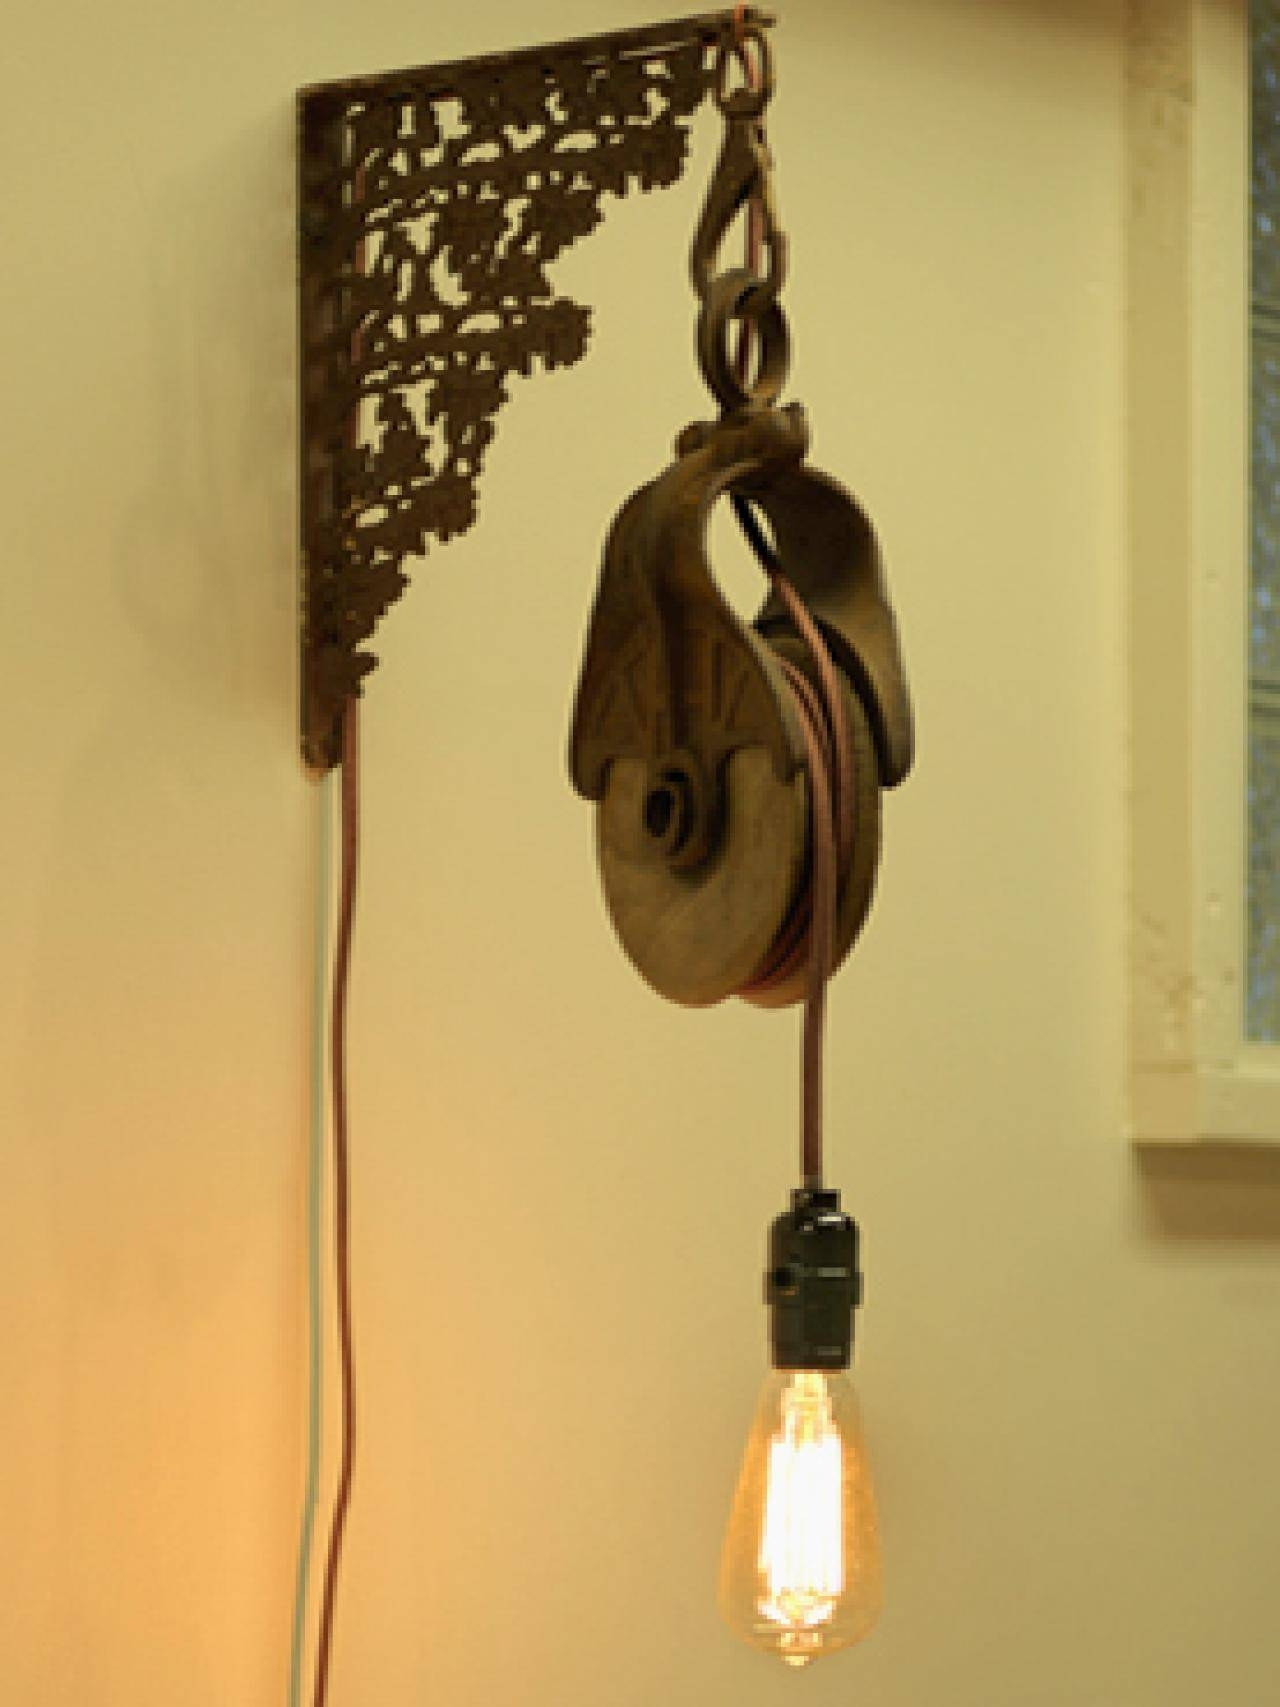 Brighten Up With These Diy Home Lighting Ideas | Hgtv's Decorating pertaining to Pulley Lights Fixture (Image 7 of 15)